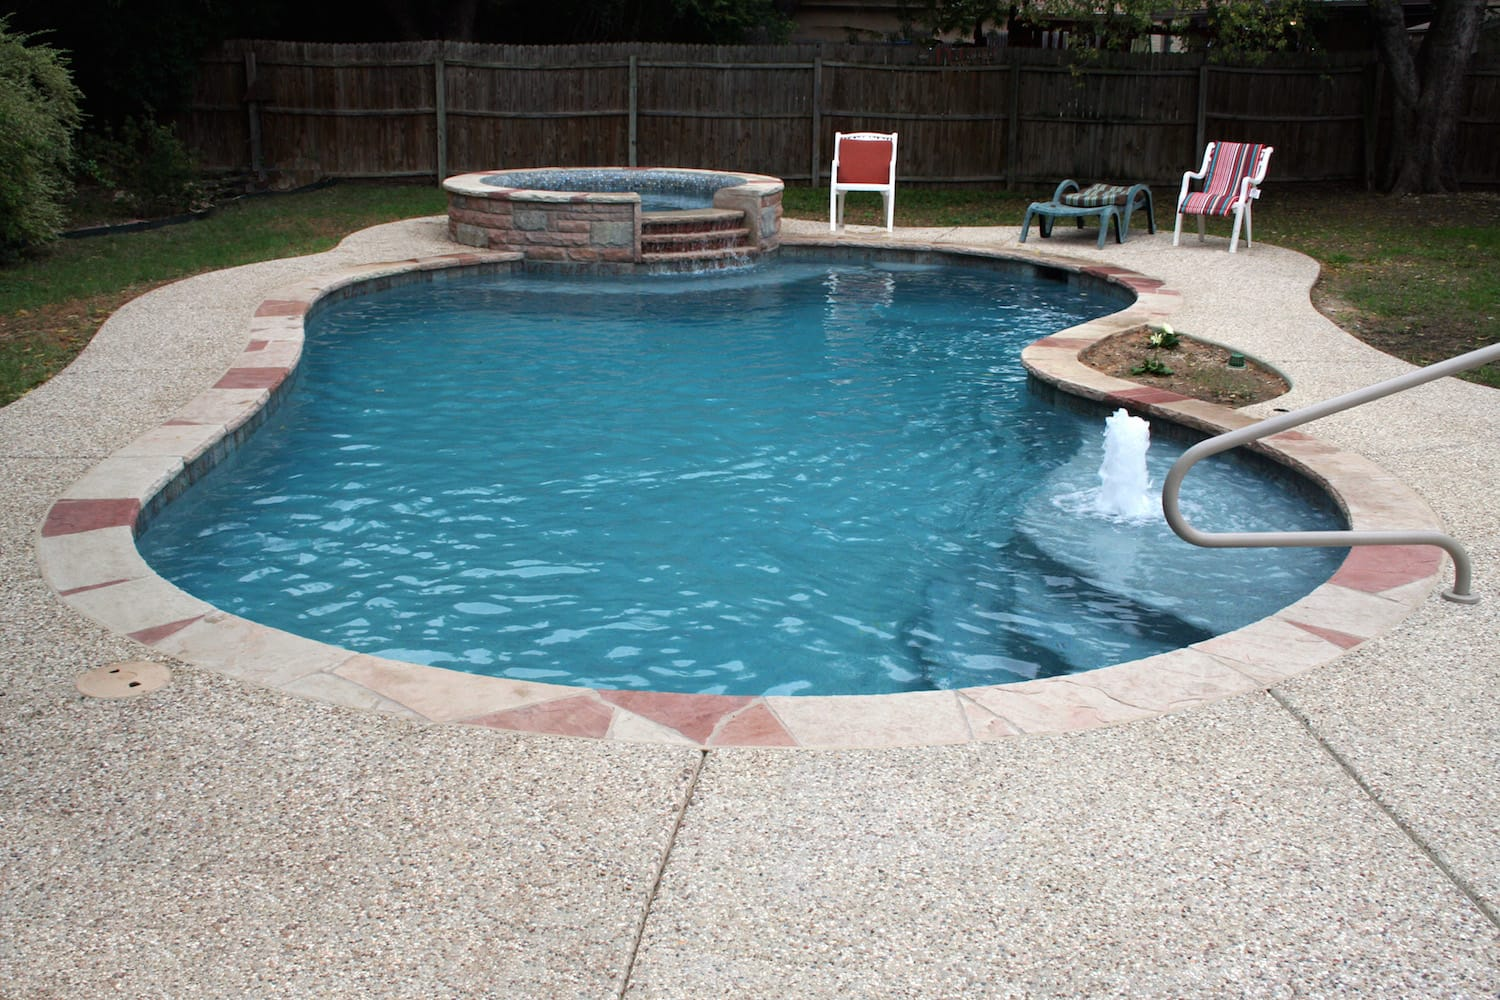 satin-matrix-antigua-pool-finish-25